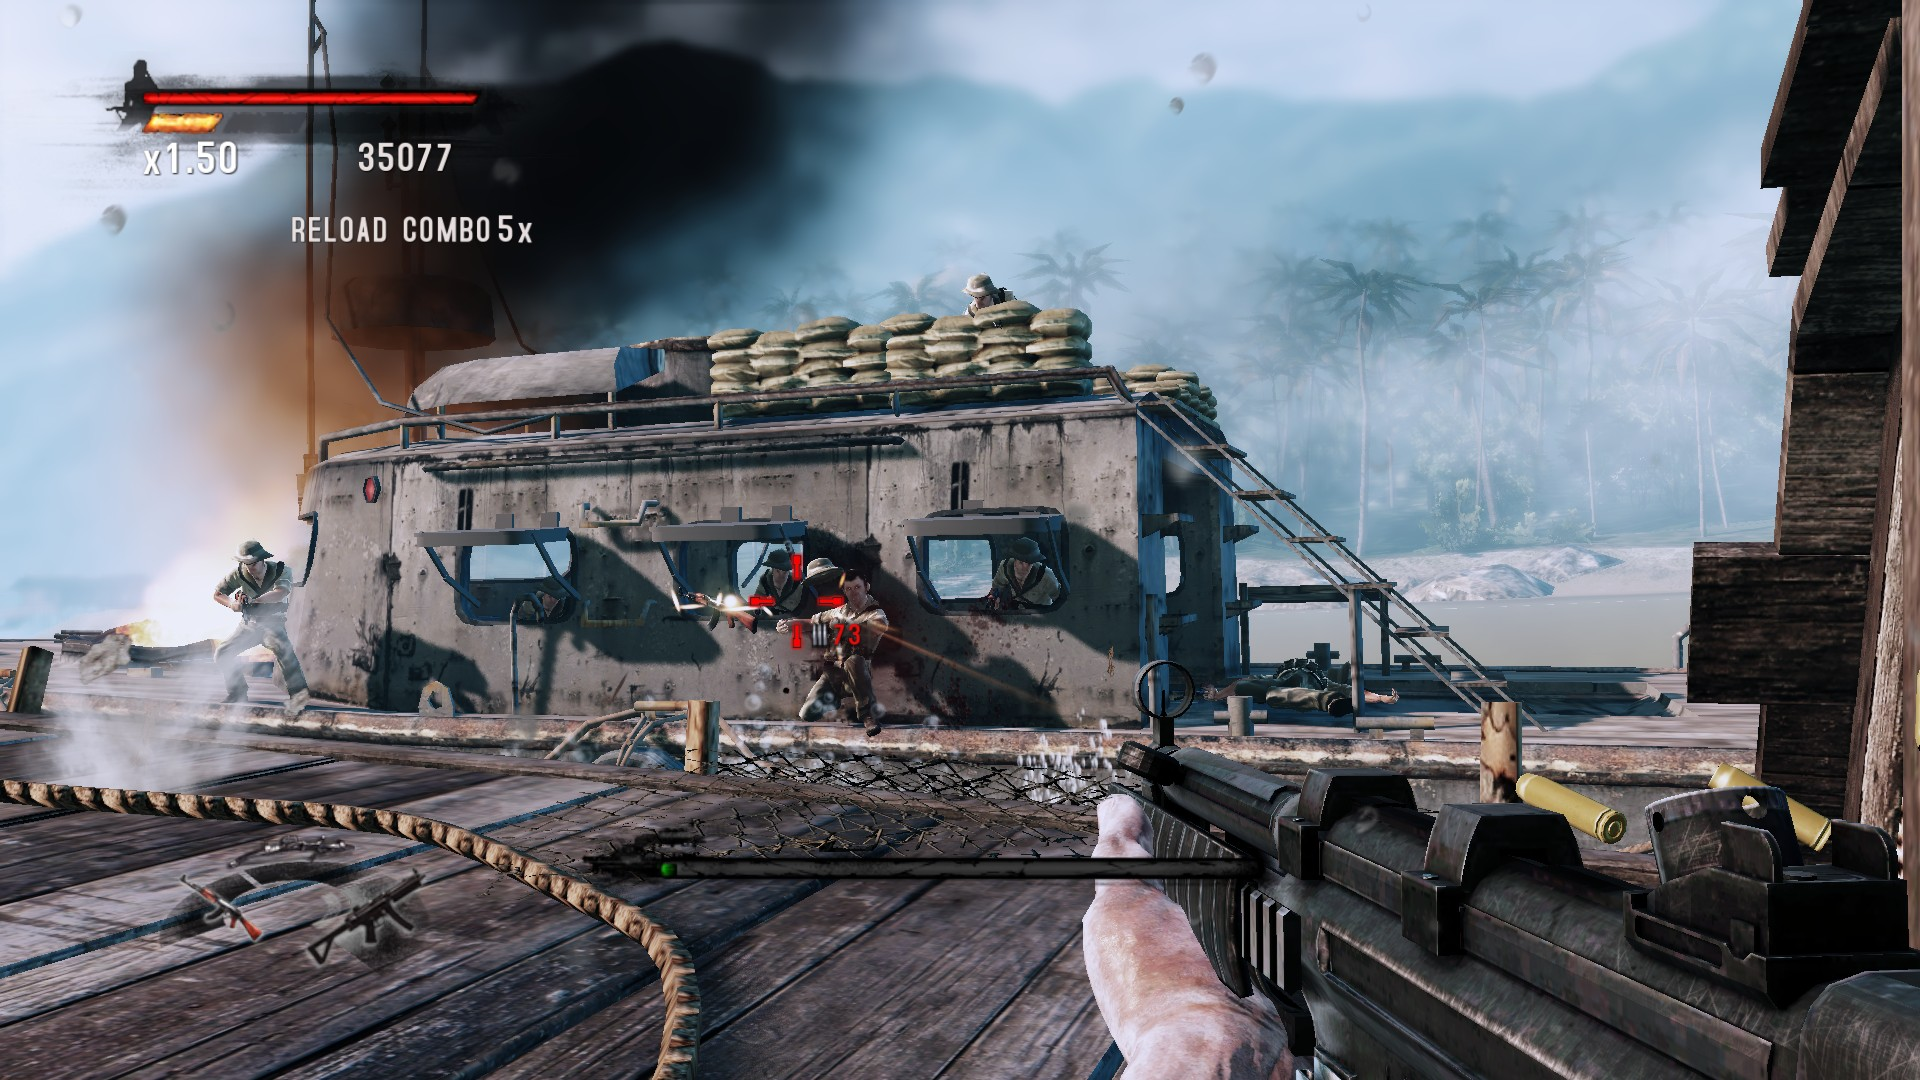 681863-rambo-the-video-game-windows-screenshot-gunfight-on-boats.jpg